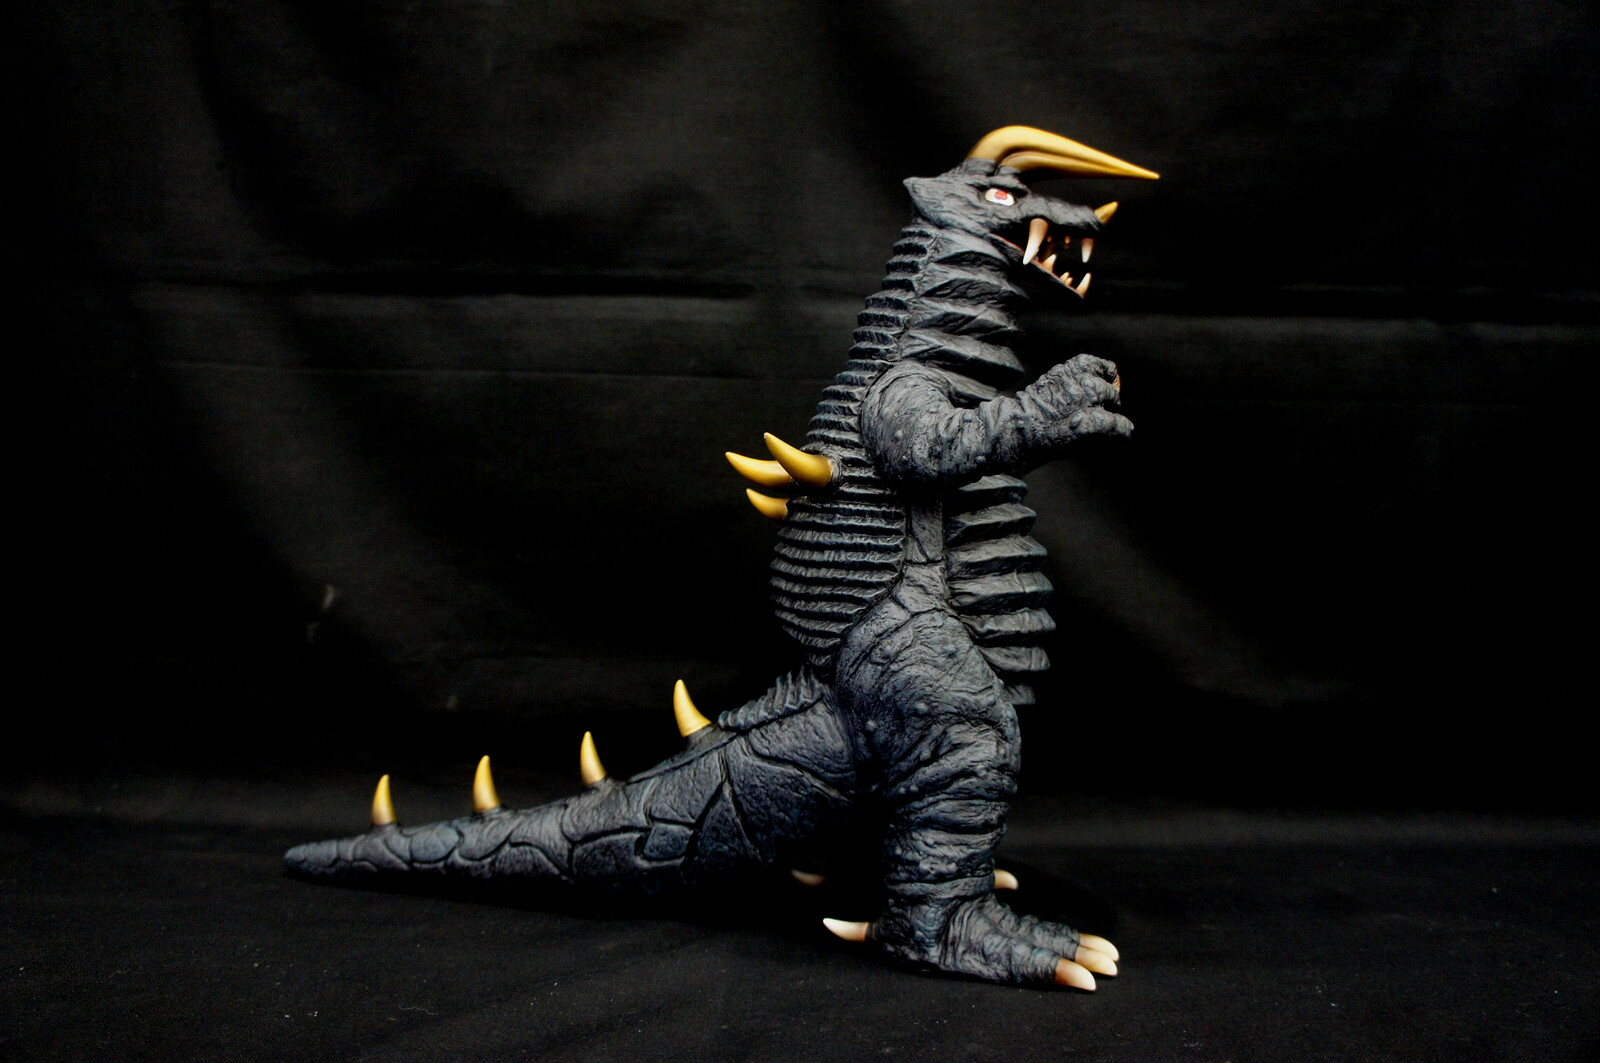 Ultra Kaiju Black King Art Statue  用心棒怪獣 ブラックキング 完成品 https://www.solidart.club/